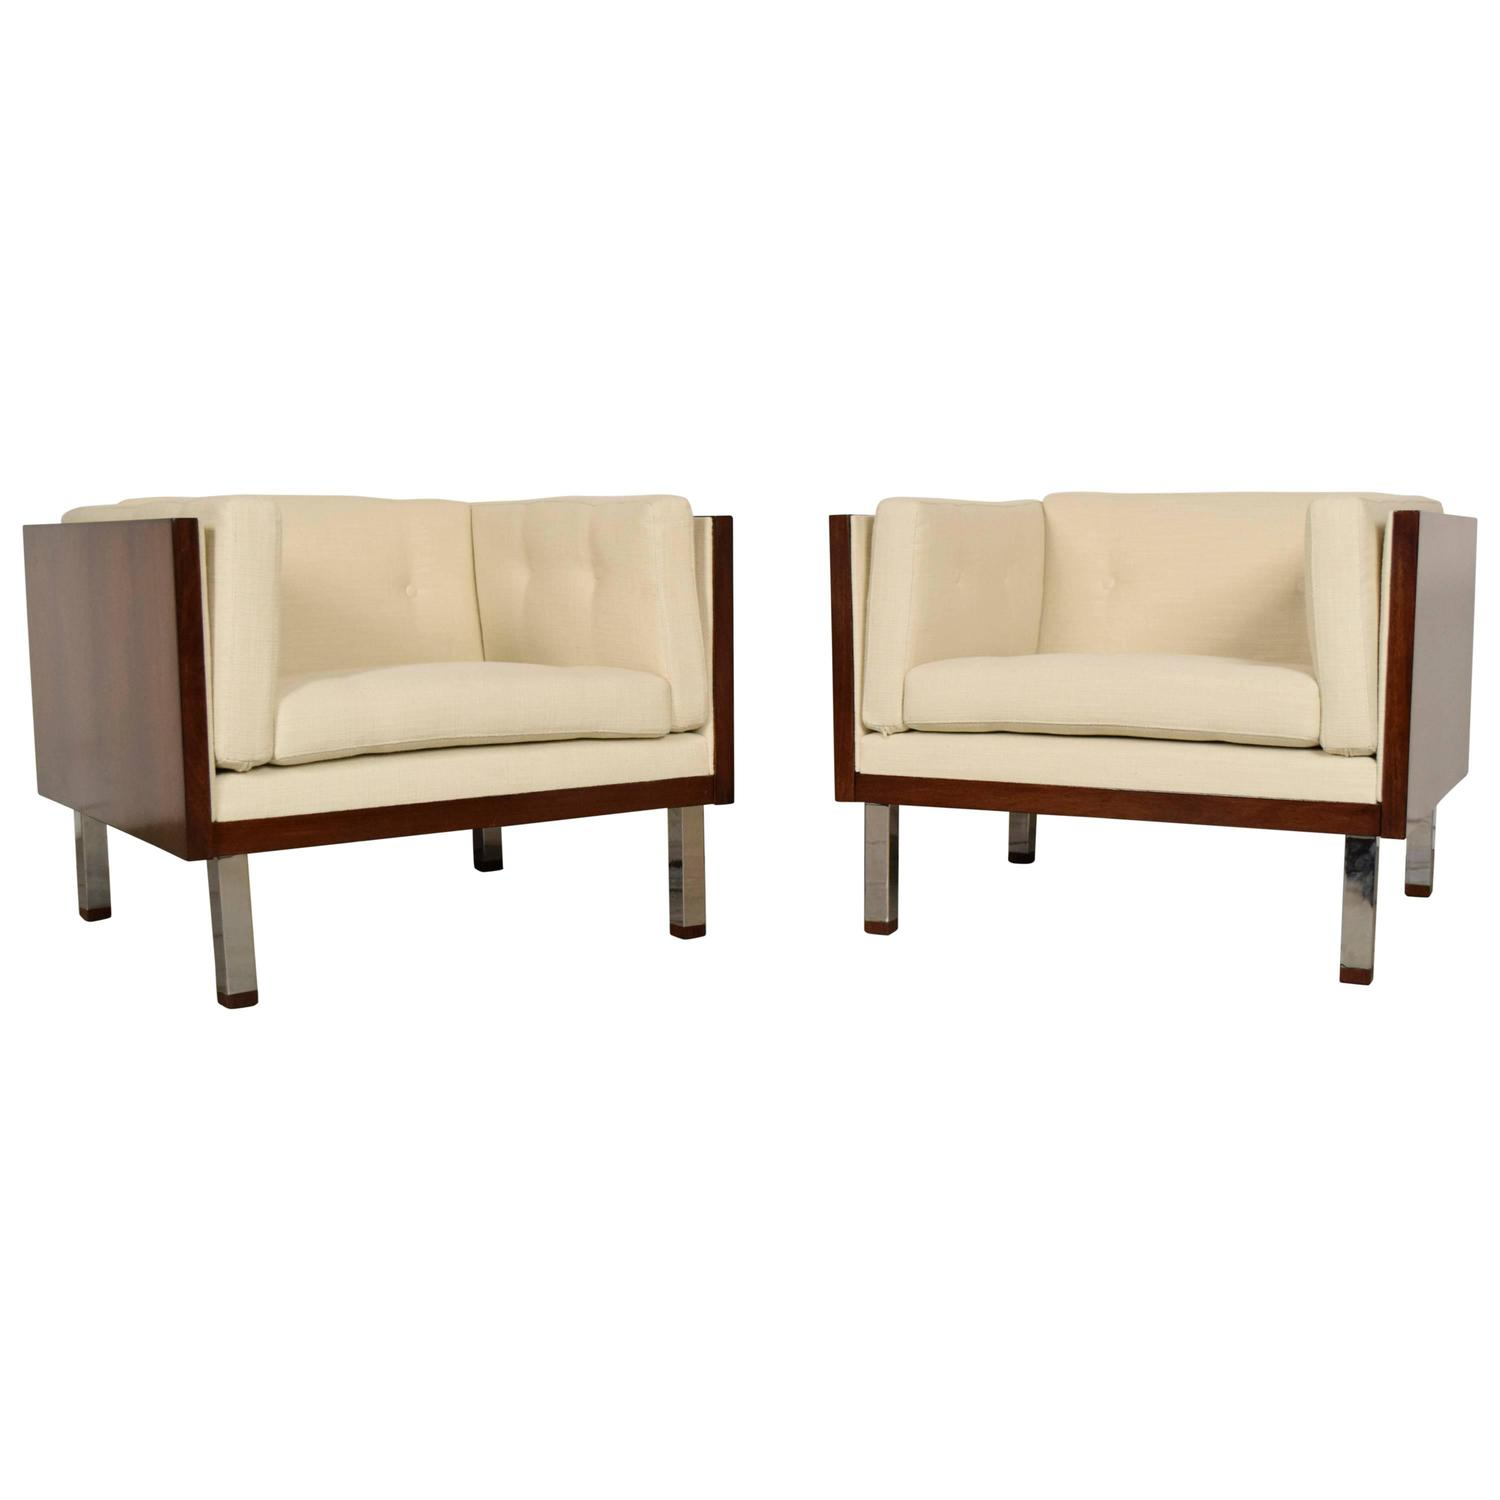 Pair of Milo Baughman Era Cube Chairs at 1stdibs